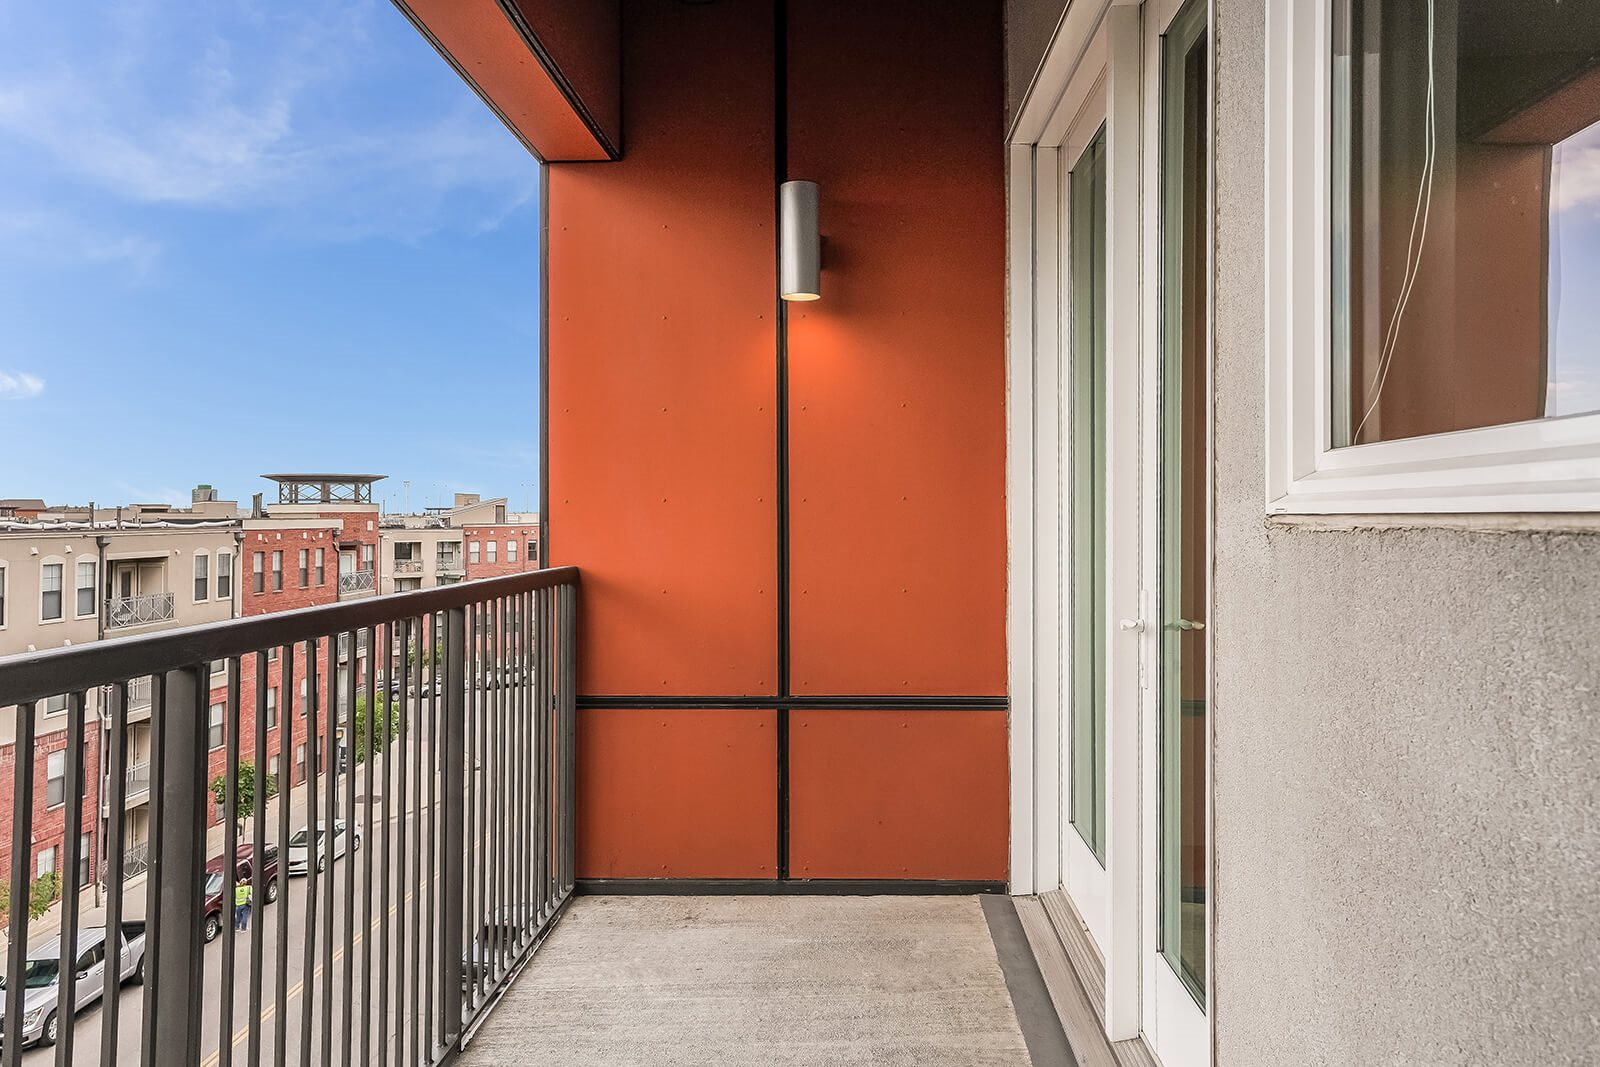 Private Balcony or Terrace with Select Apartments at The Casey, 80202, CO